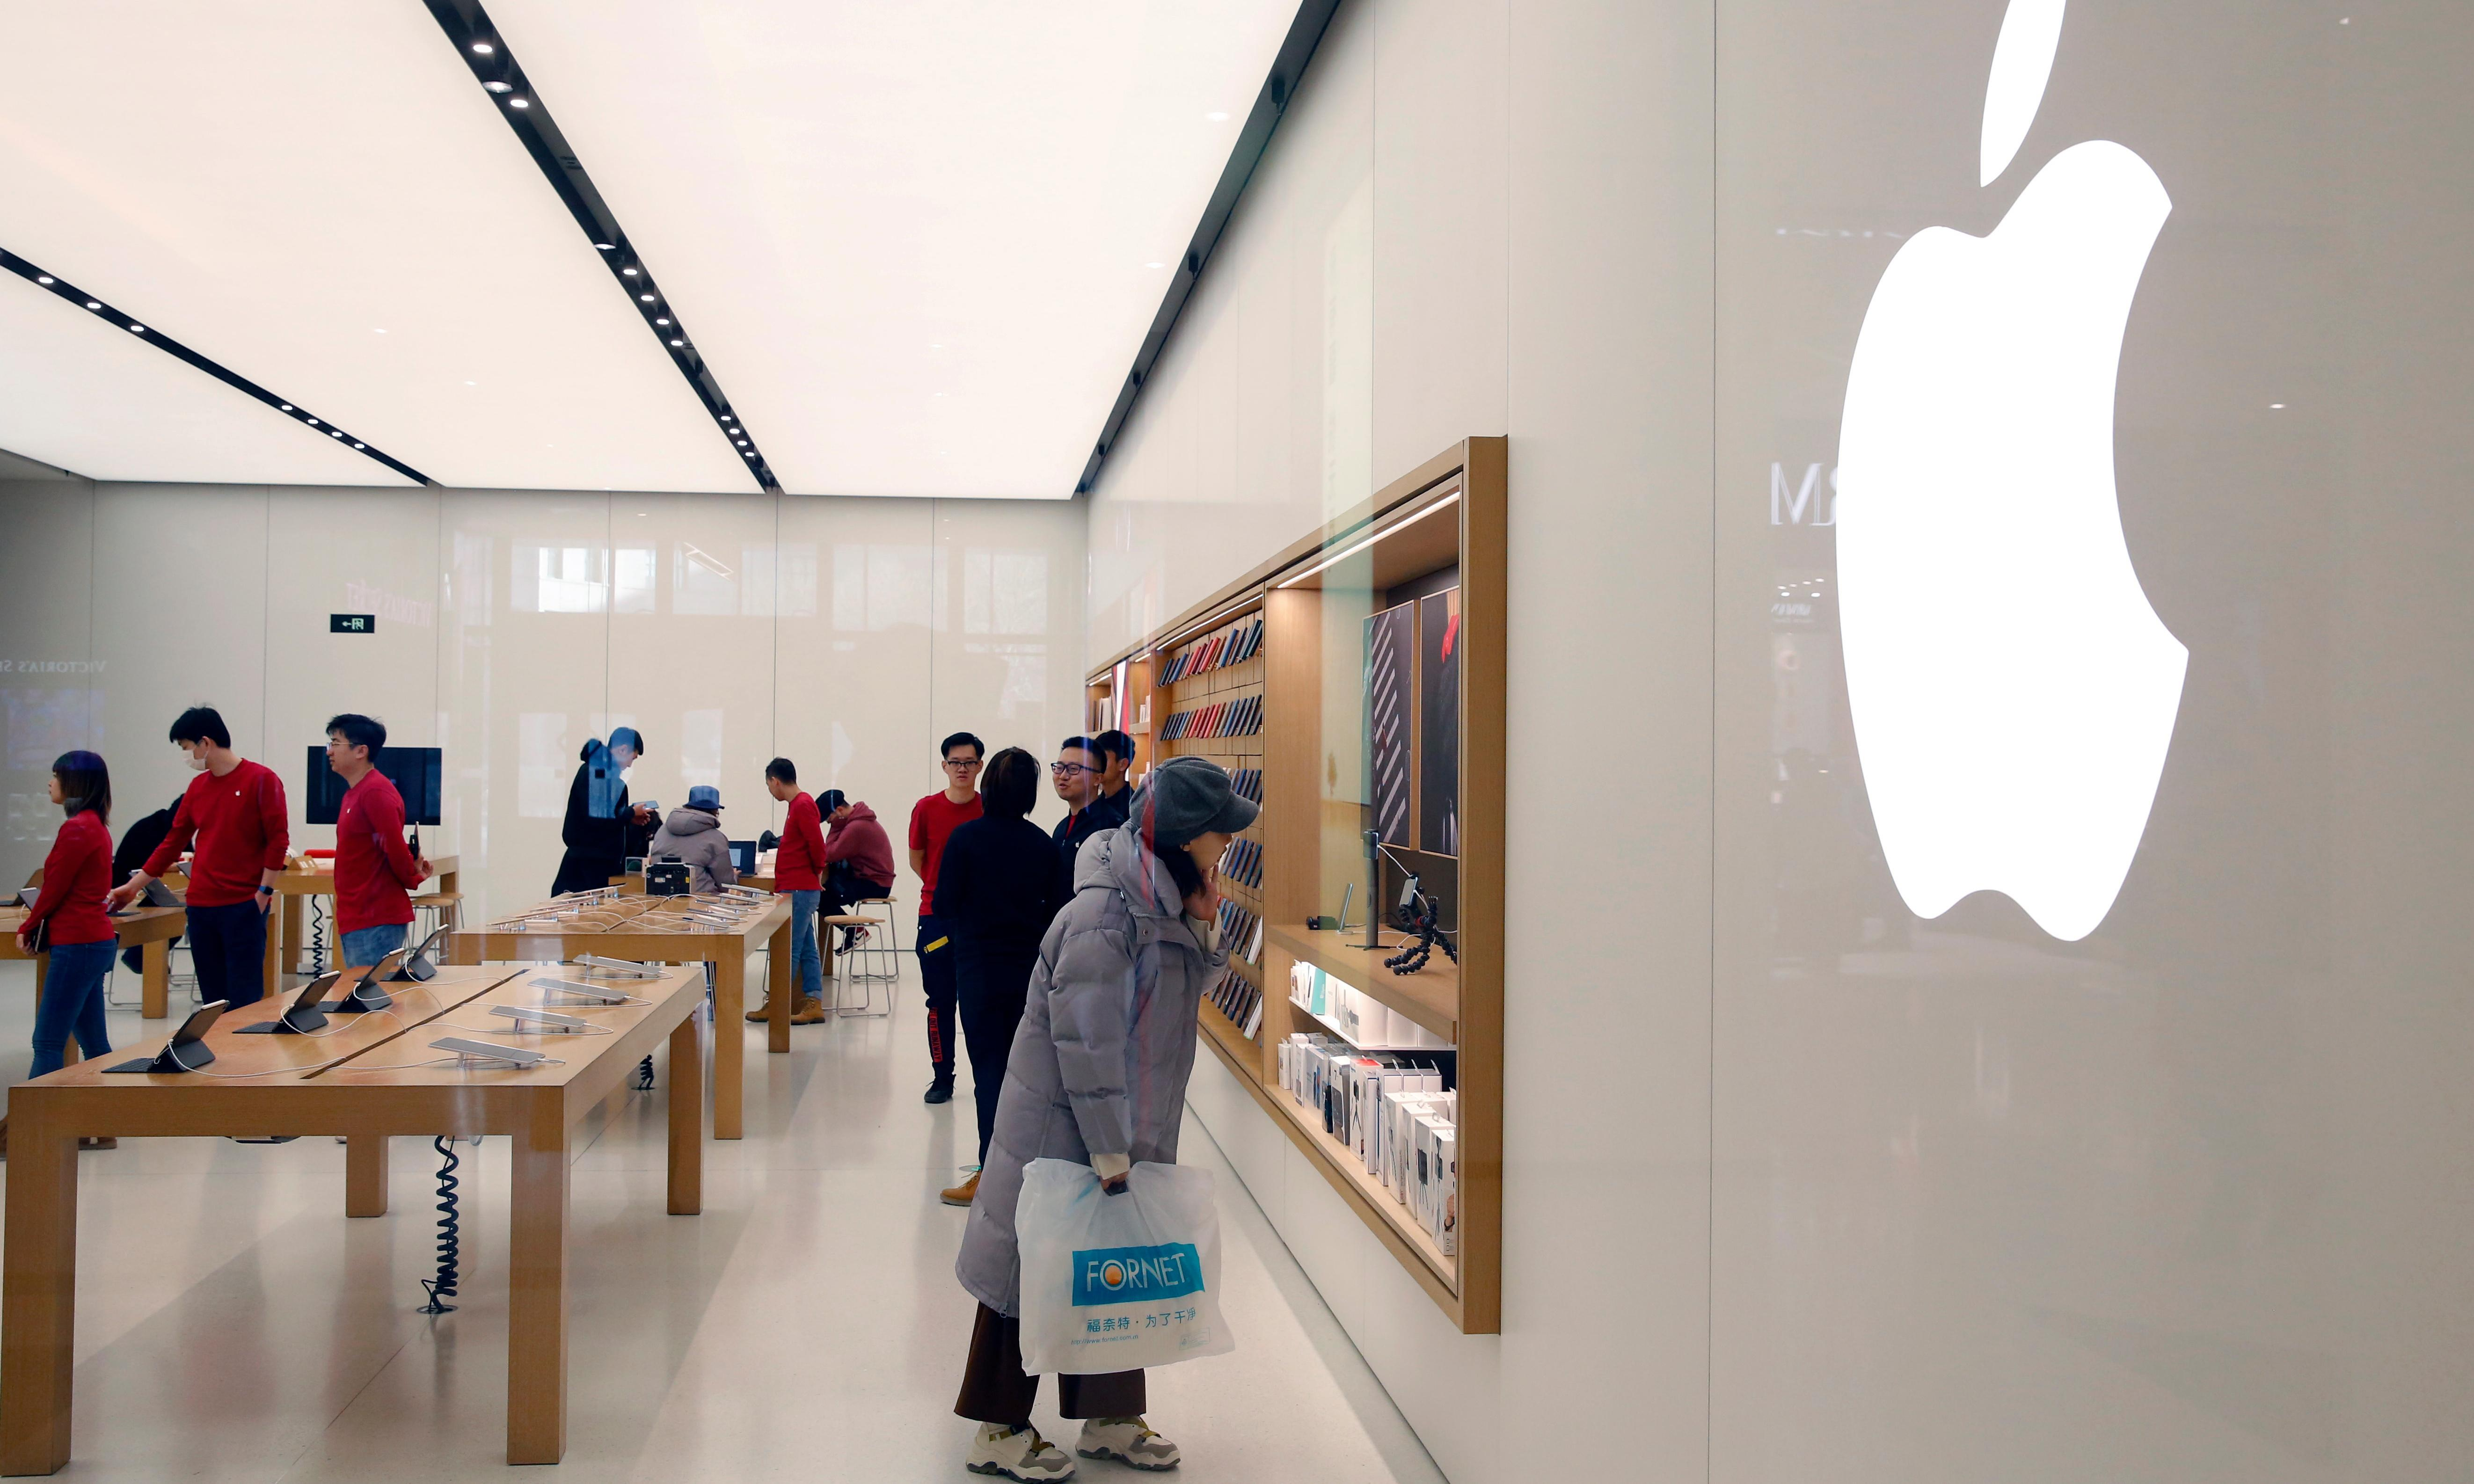 Apple and China's problems show that today's titans may not rule the world tomorrow